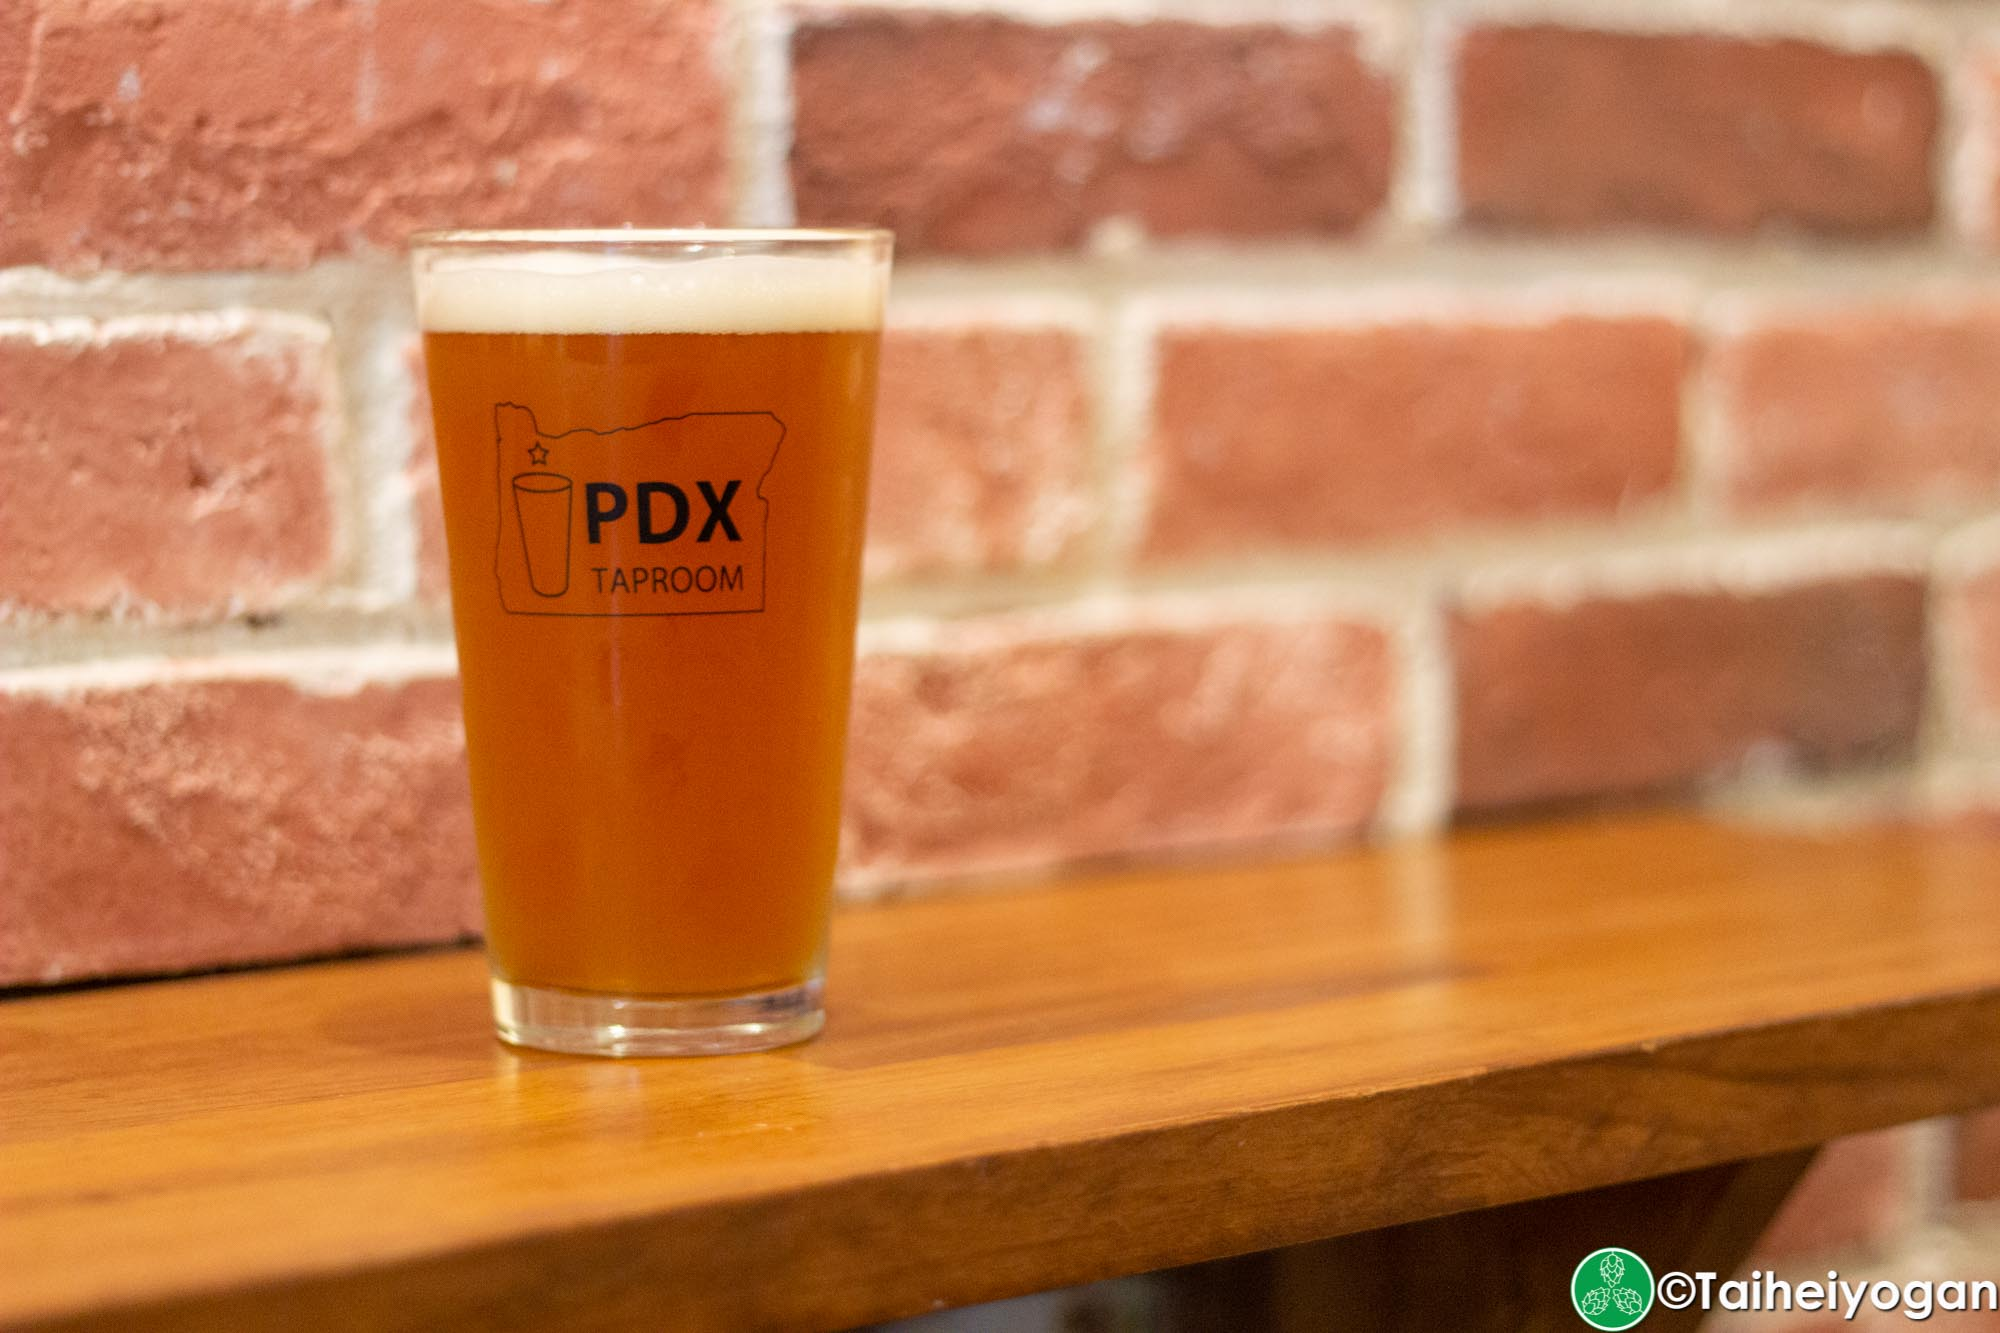 PDX Taproom - Menu - PDX Beer